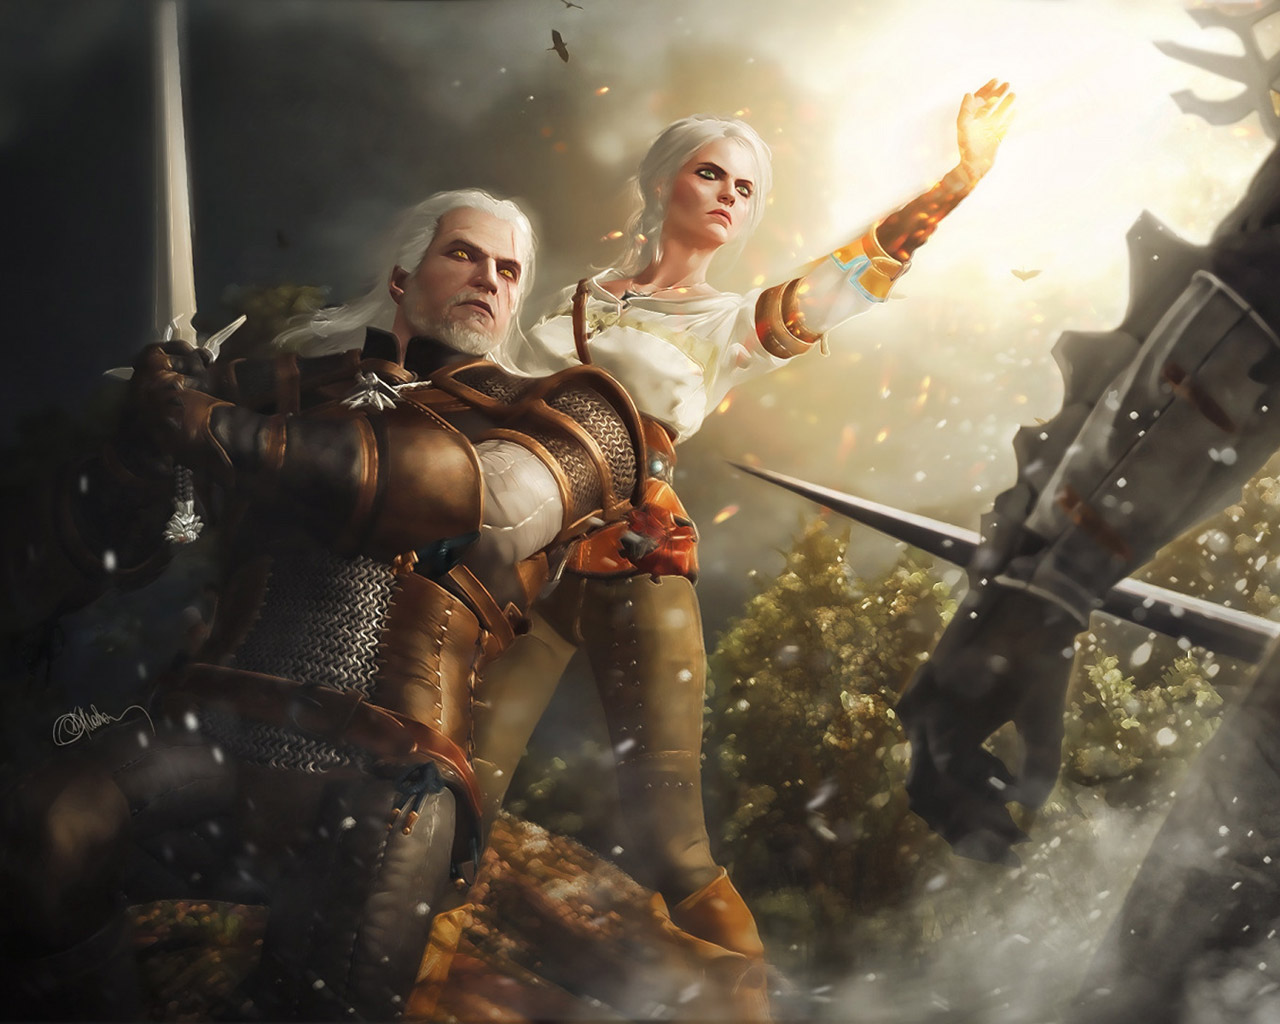 The Witcher 3 Wallpaper in 1280x1024